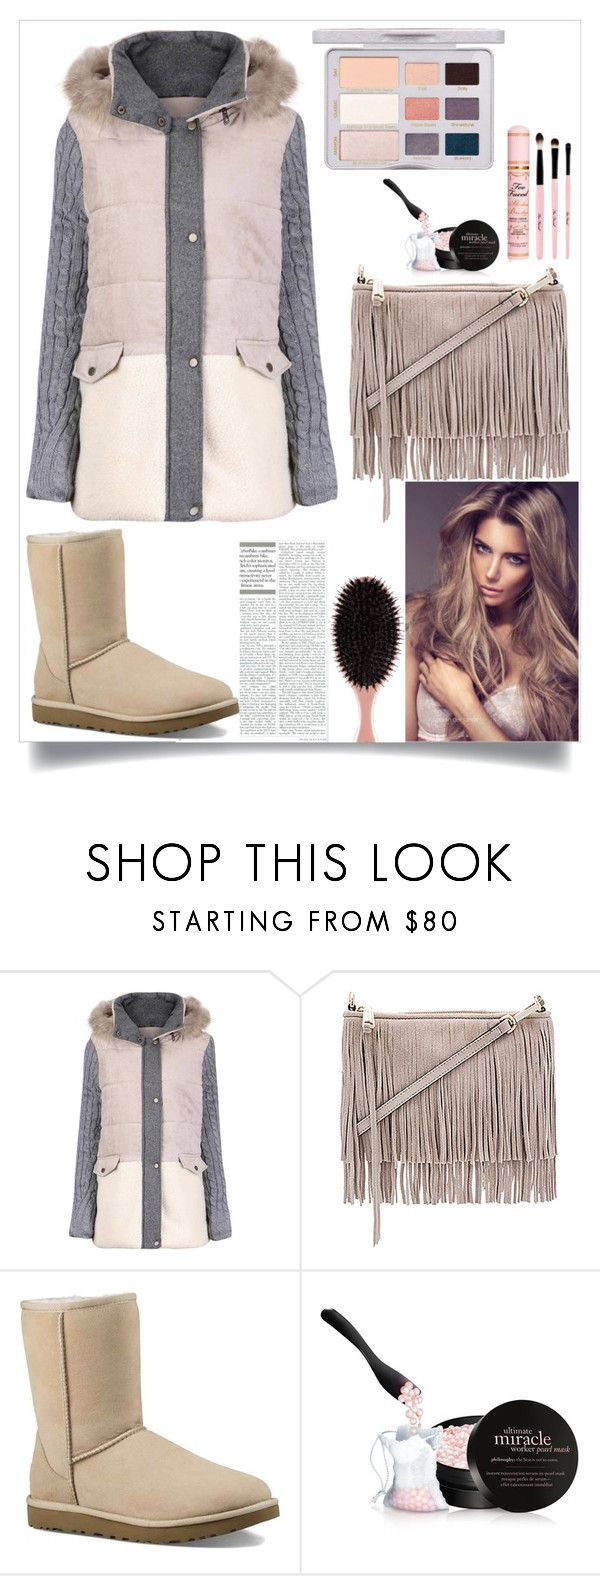 """Light Coat"" by martinezmariamm ❤ liked on Polyvore featuring Rebecca Minkoff, UGG Australia, Too Faced Cosmetics and philosophy"